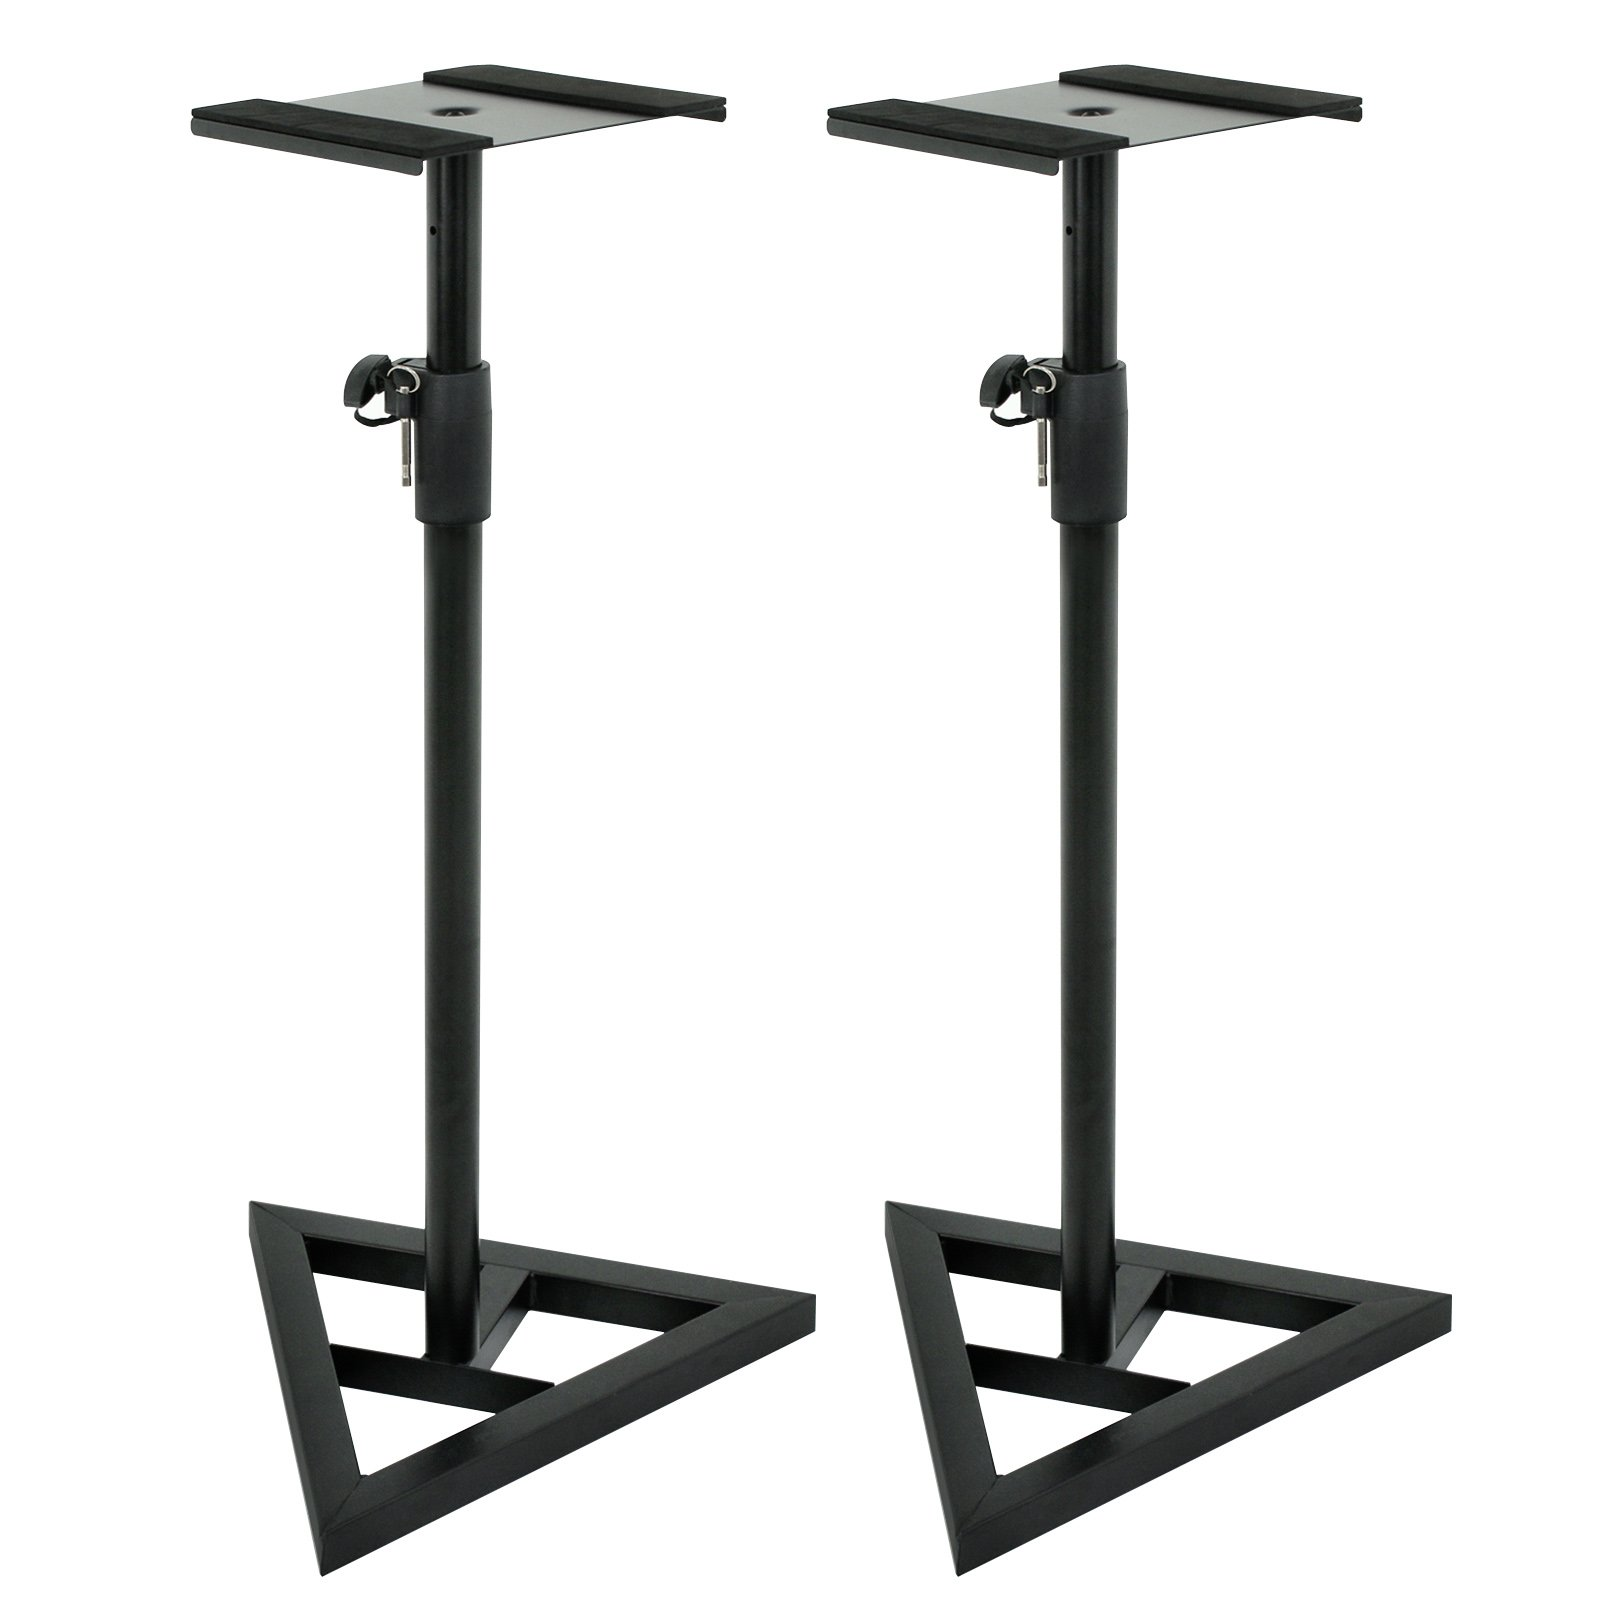 ZENY Pair of Studio Monitor Speaker Stands Height Adjustable Concert Band DJ Studio Floor Stands w/Stable Triangle Base, Black